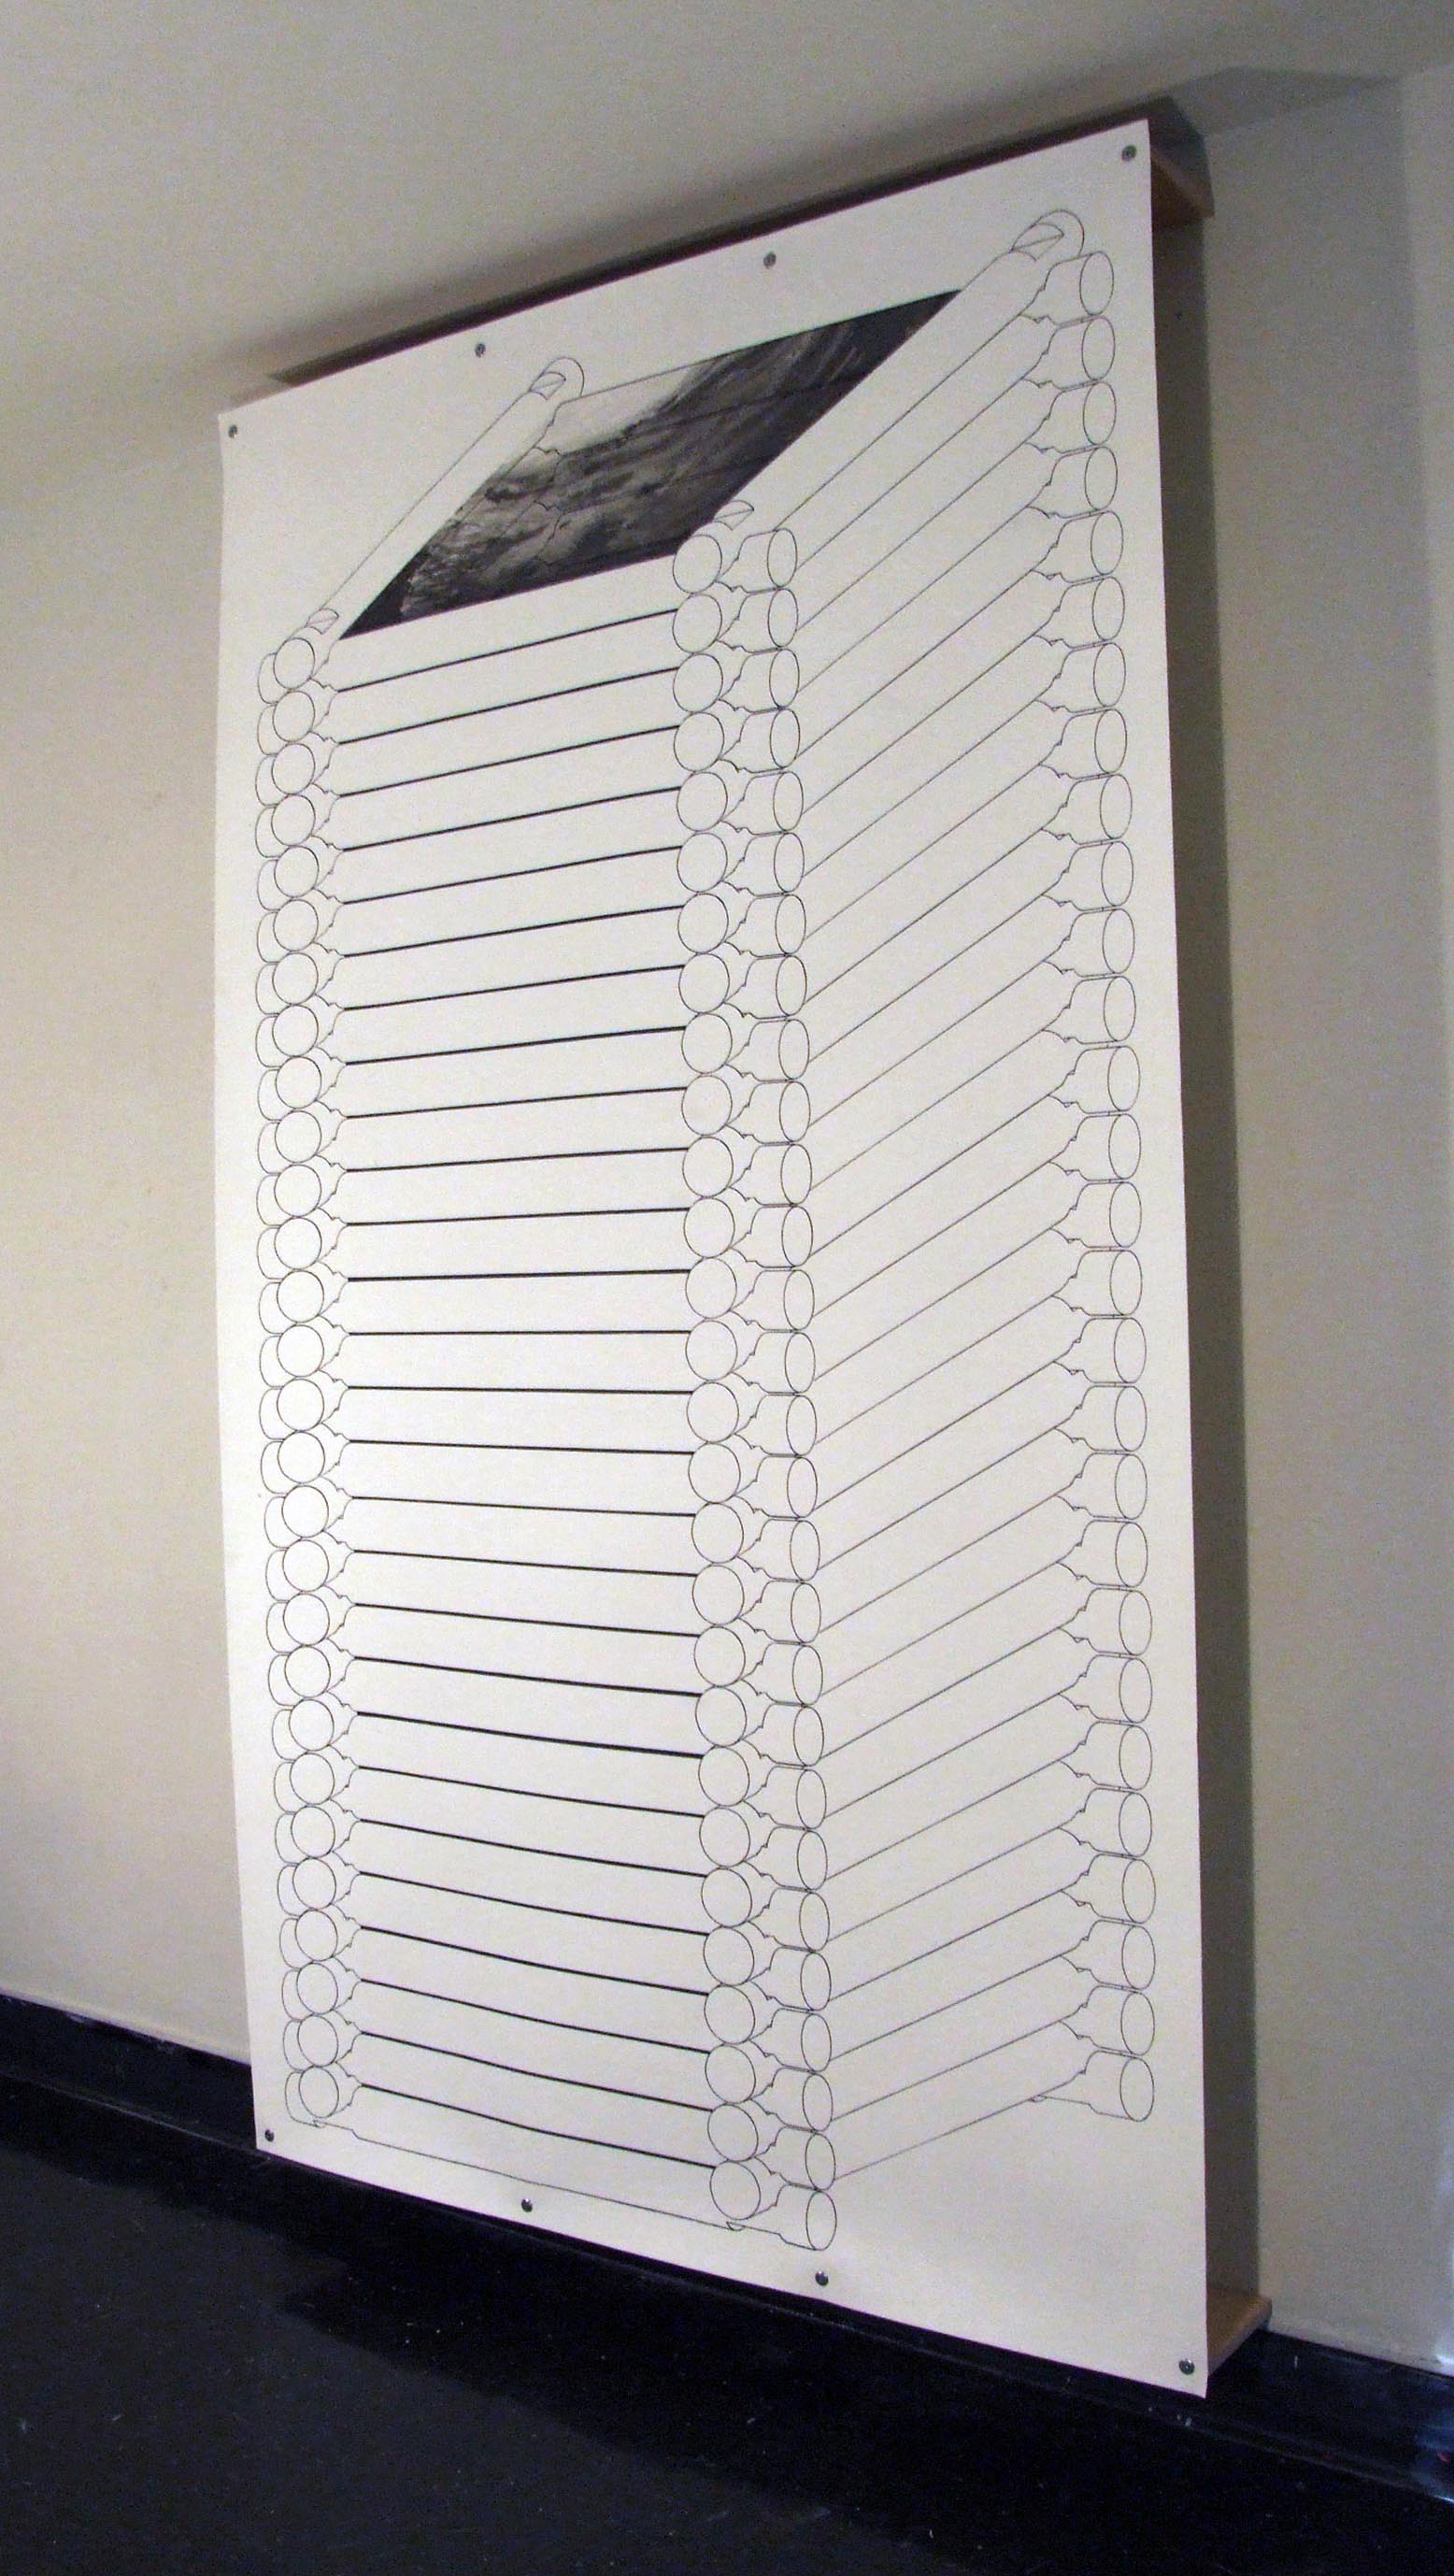 "Tower #1, installation, 2011, screenprint, 8' 9"" x 5'"